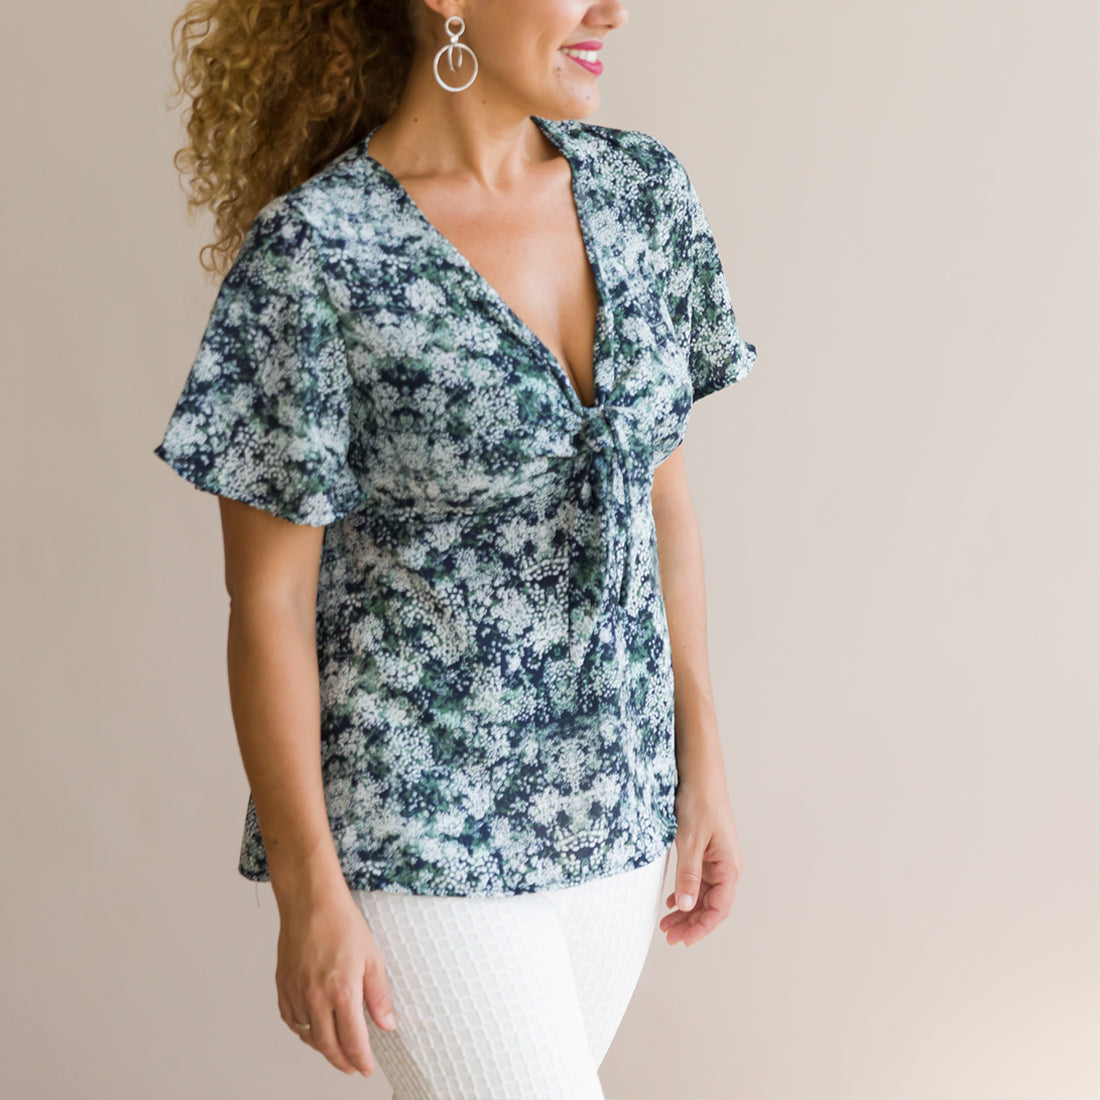 Blusa Parly Estampado VERDE 1